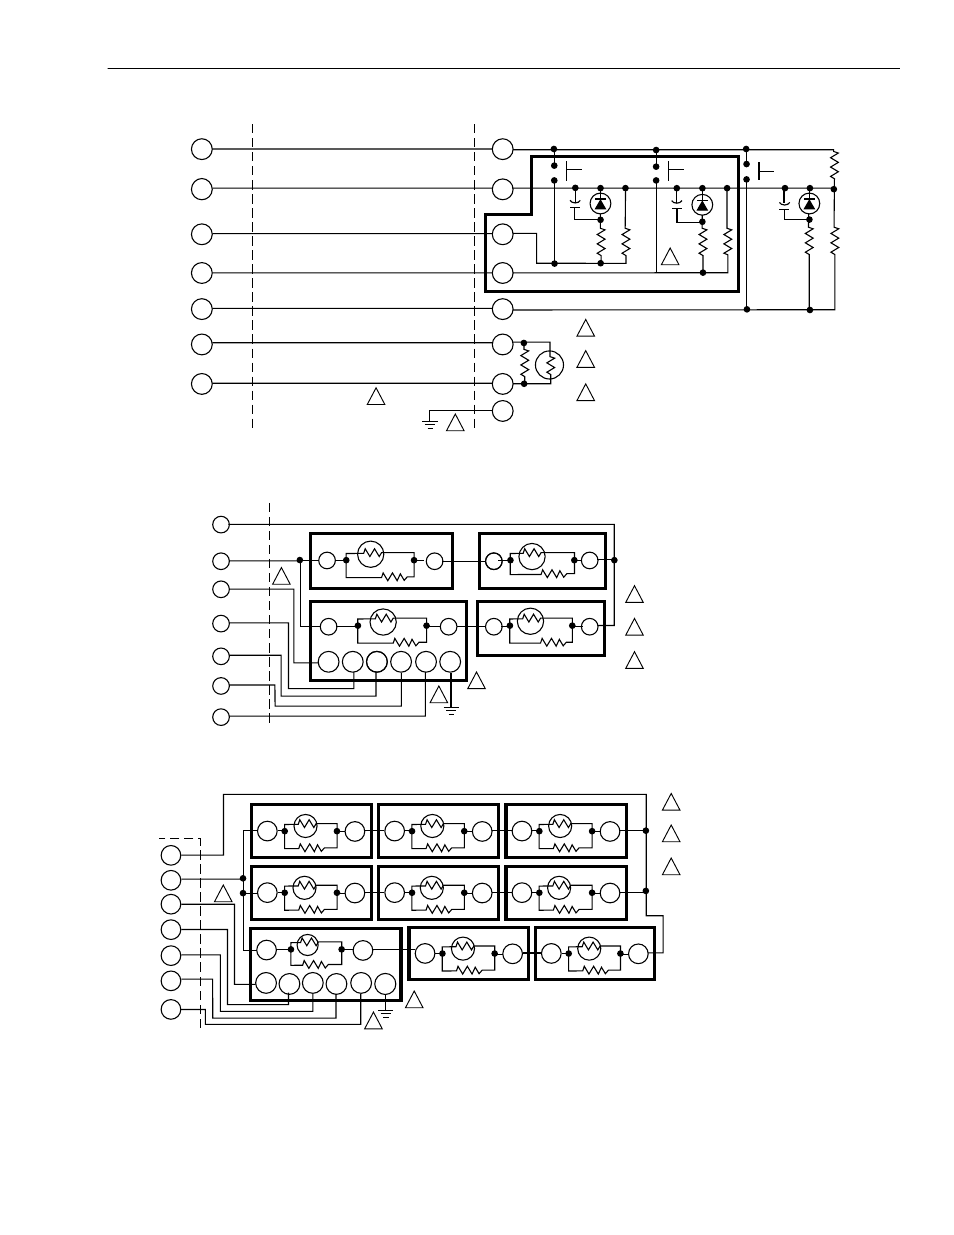 honeywell remote sensor t7147 page5 nd 5, fig 6, t7147 remote sensor and override module honeywell honeywell t7300 wiring diagram at n-0.co